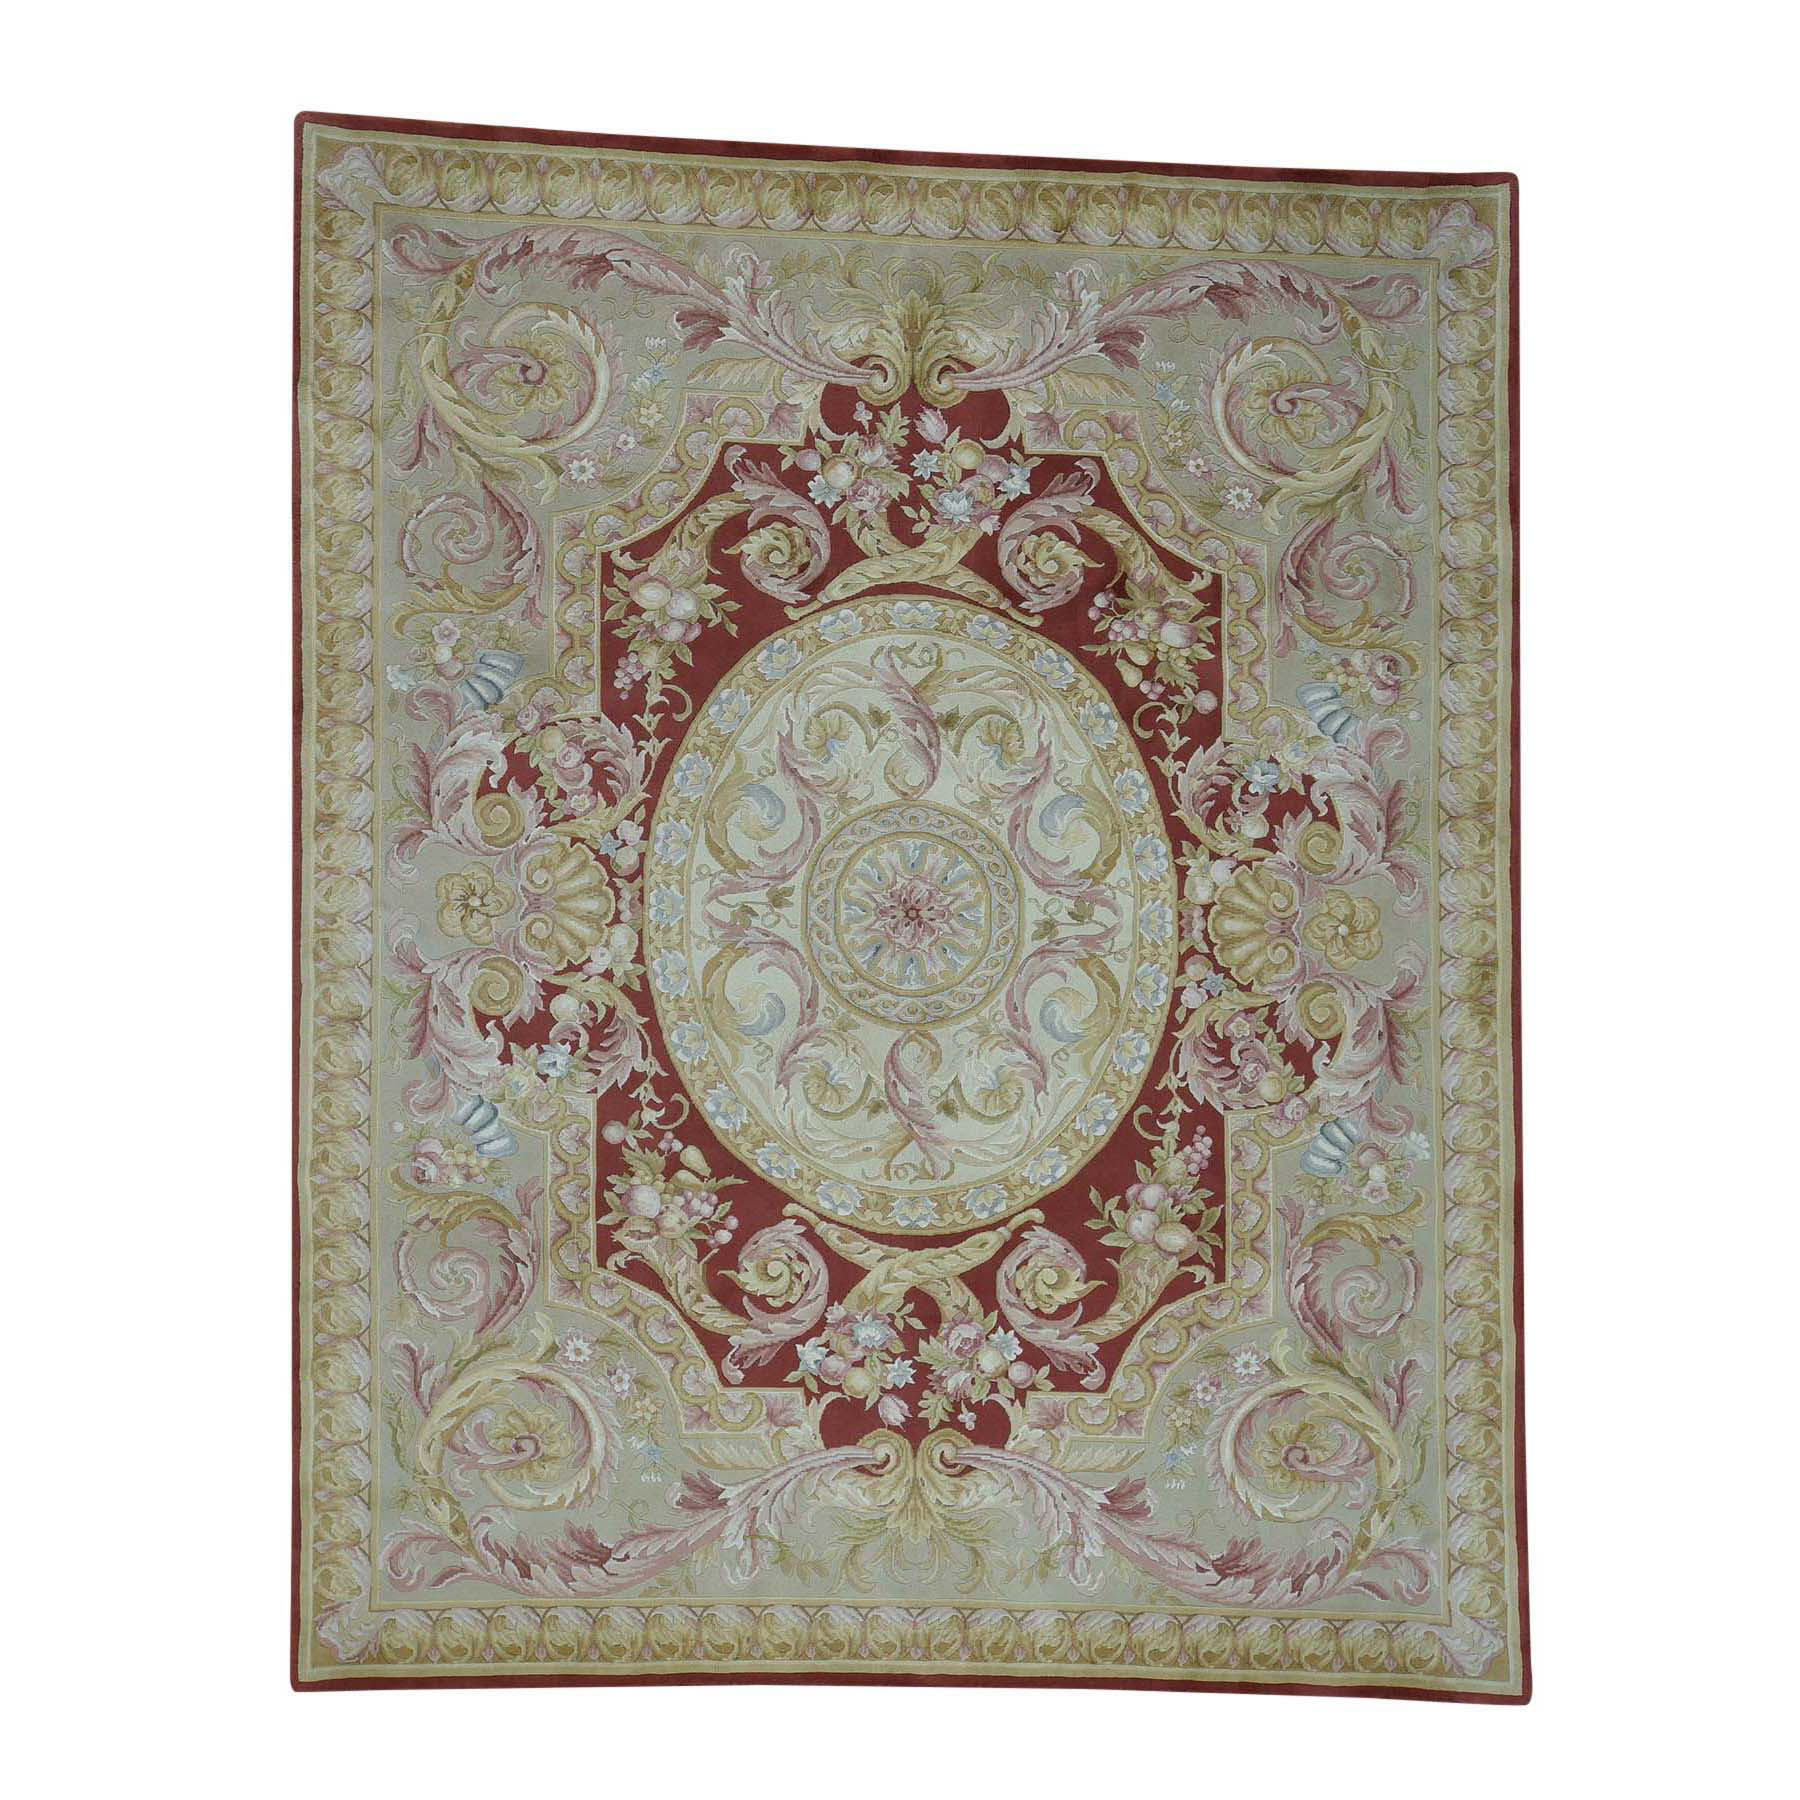 Elegant European Collection Hand Knotted Red Rug No: 173812